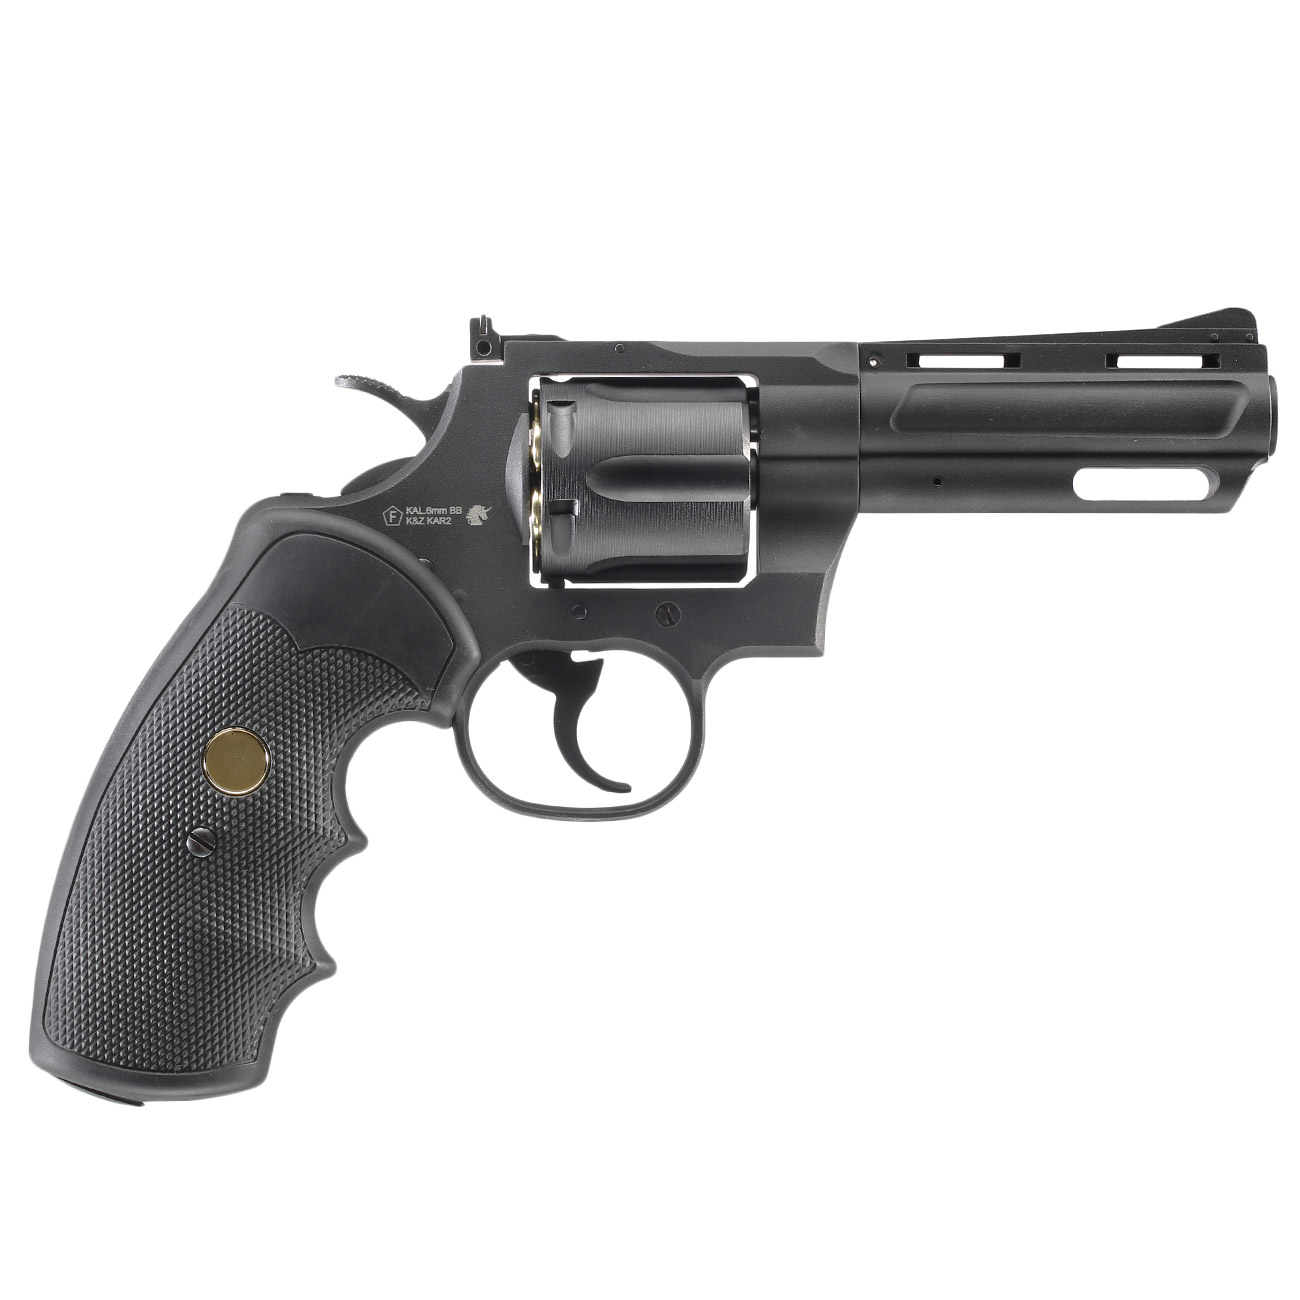 King Arms .357 Magnum Custom I 4 Zoll Revolver Vollmetall CO2 6mm BB schwarz 2